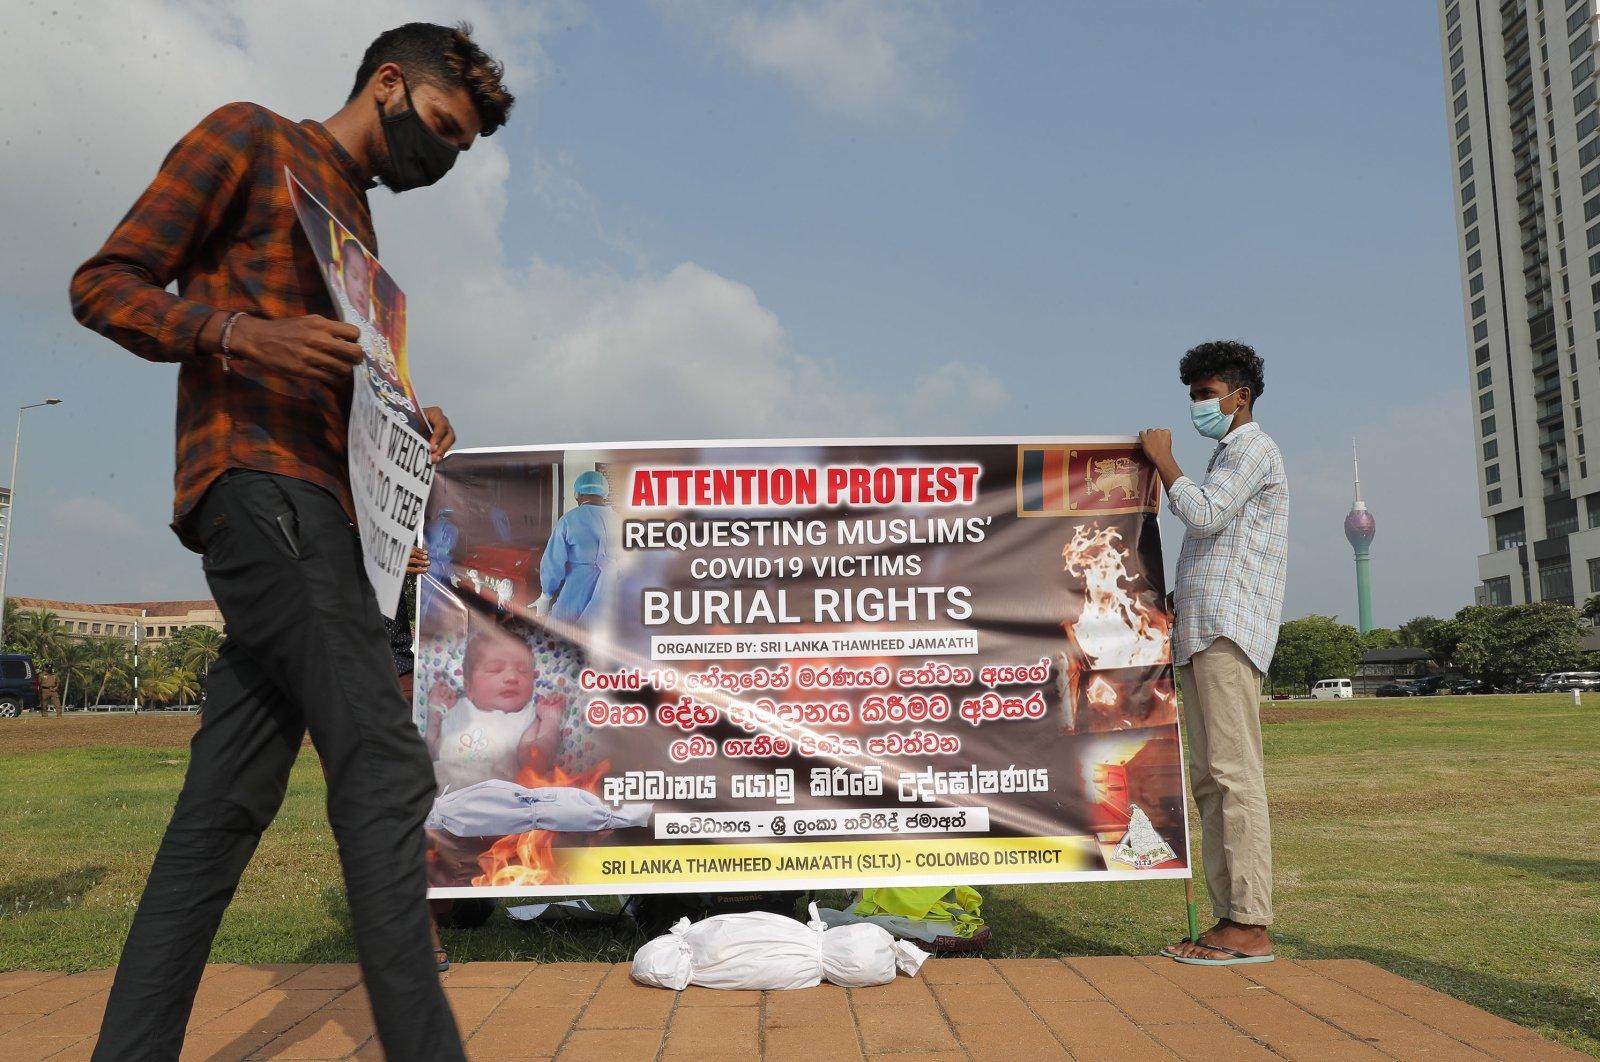 Members of Sri Lanka Thawheed Jamaath, a Muslim organization, display a banner demanding burial rights for Muslims who die of COVID-19, in Colombo, Sri Lanka, Dec. 16, 2020. (AP Photo)